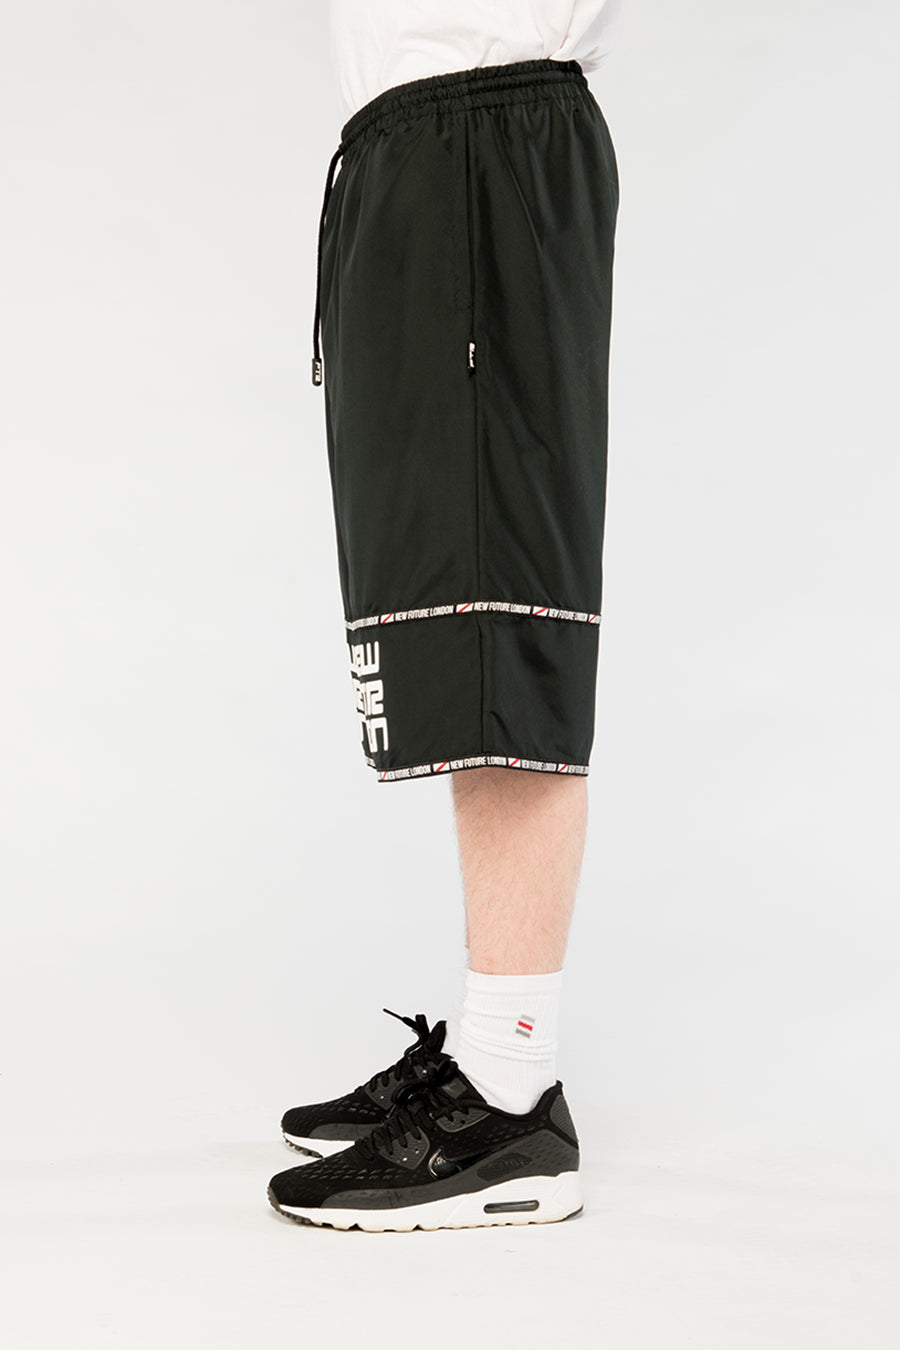 new_future_london_racer_shorts_blk_2-1.jpg